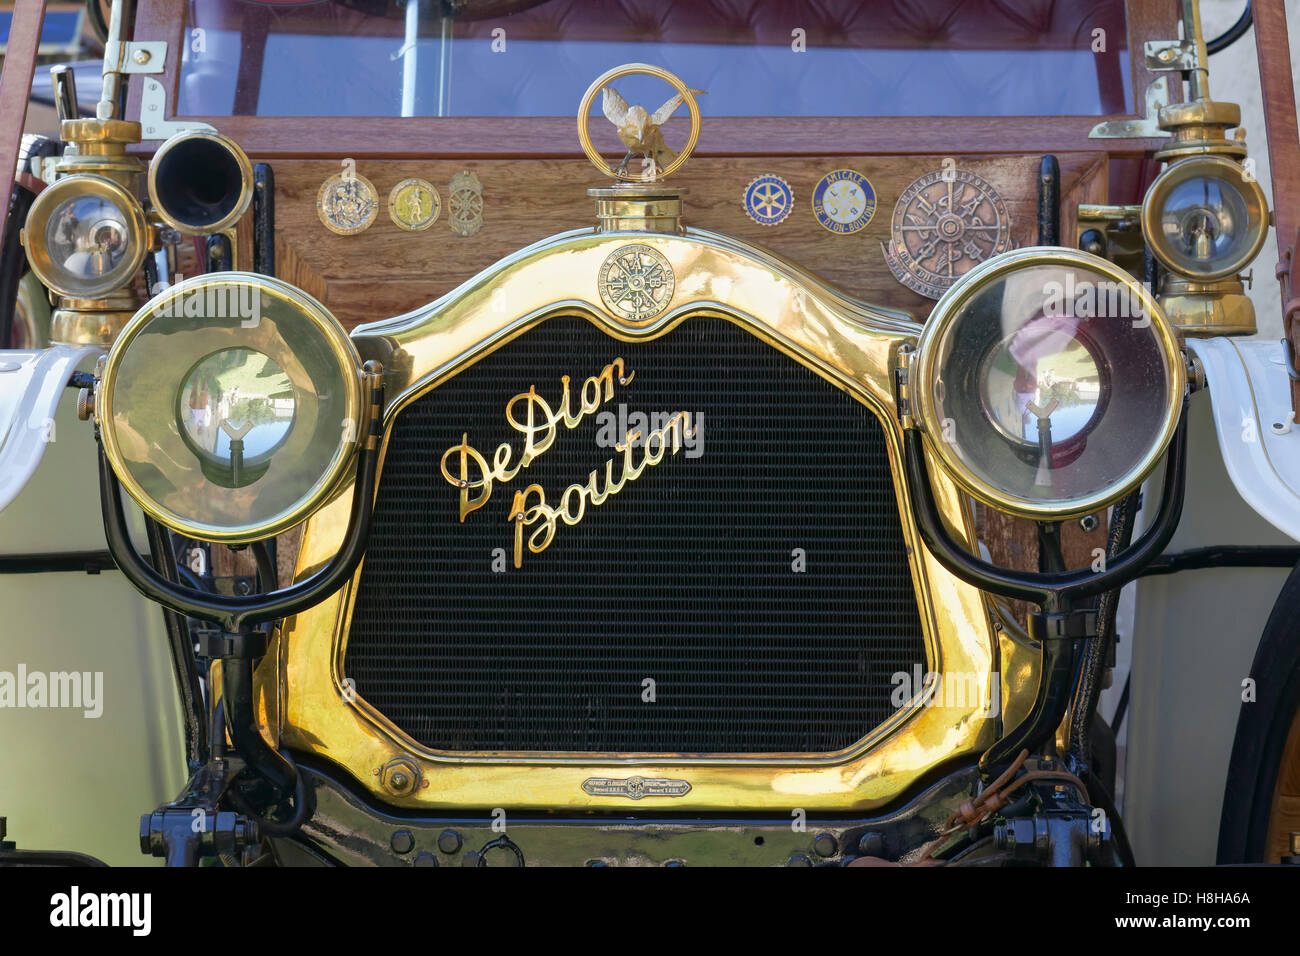 De Dion Bouton emblem on engine of car, Landaulet 1908 model of the French classic car, Schloss Dyck Classic Days - Stock Image